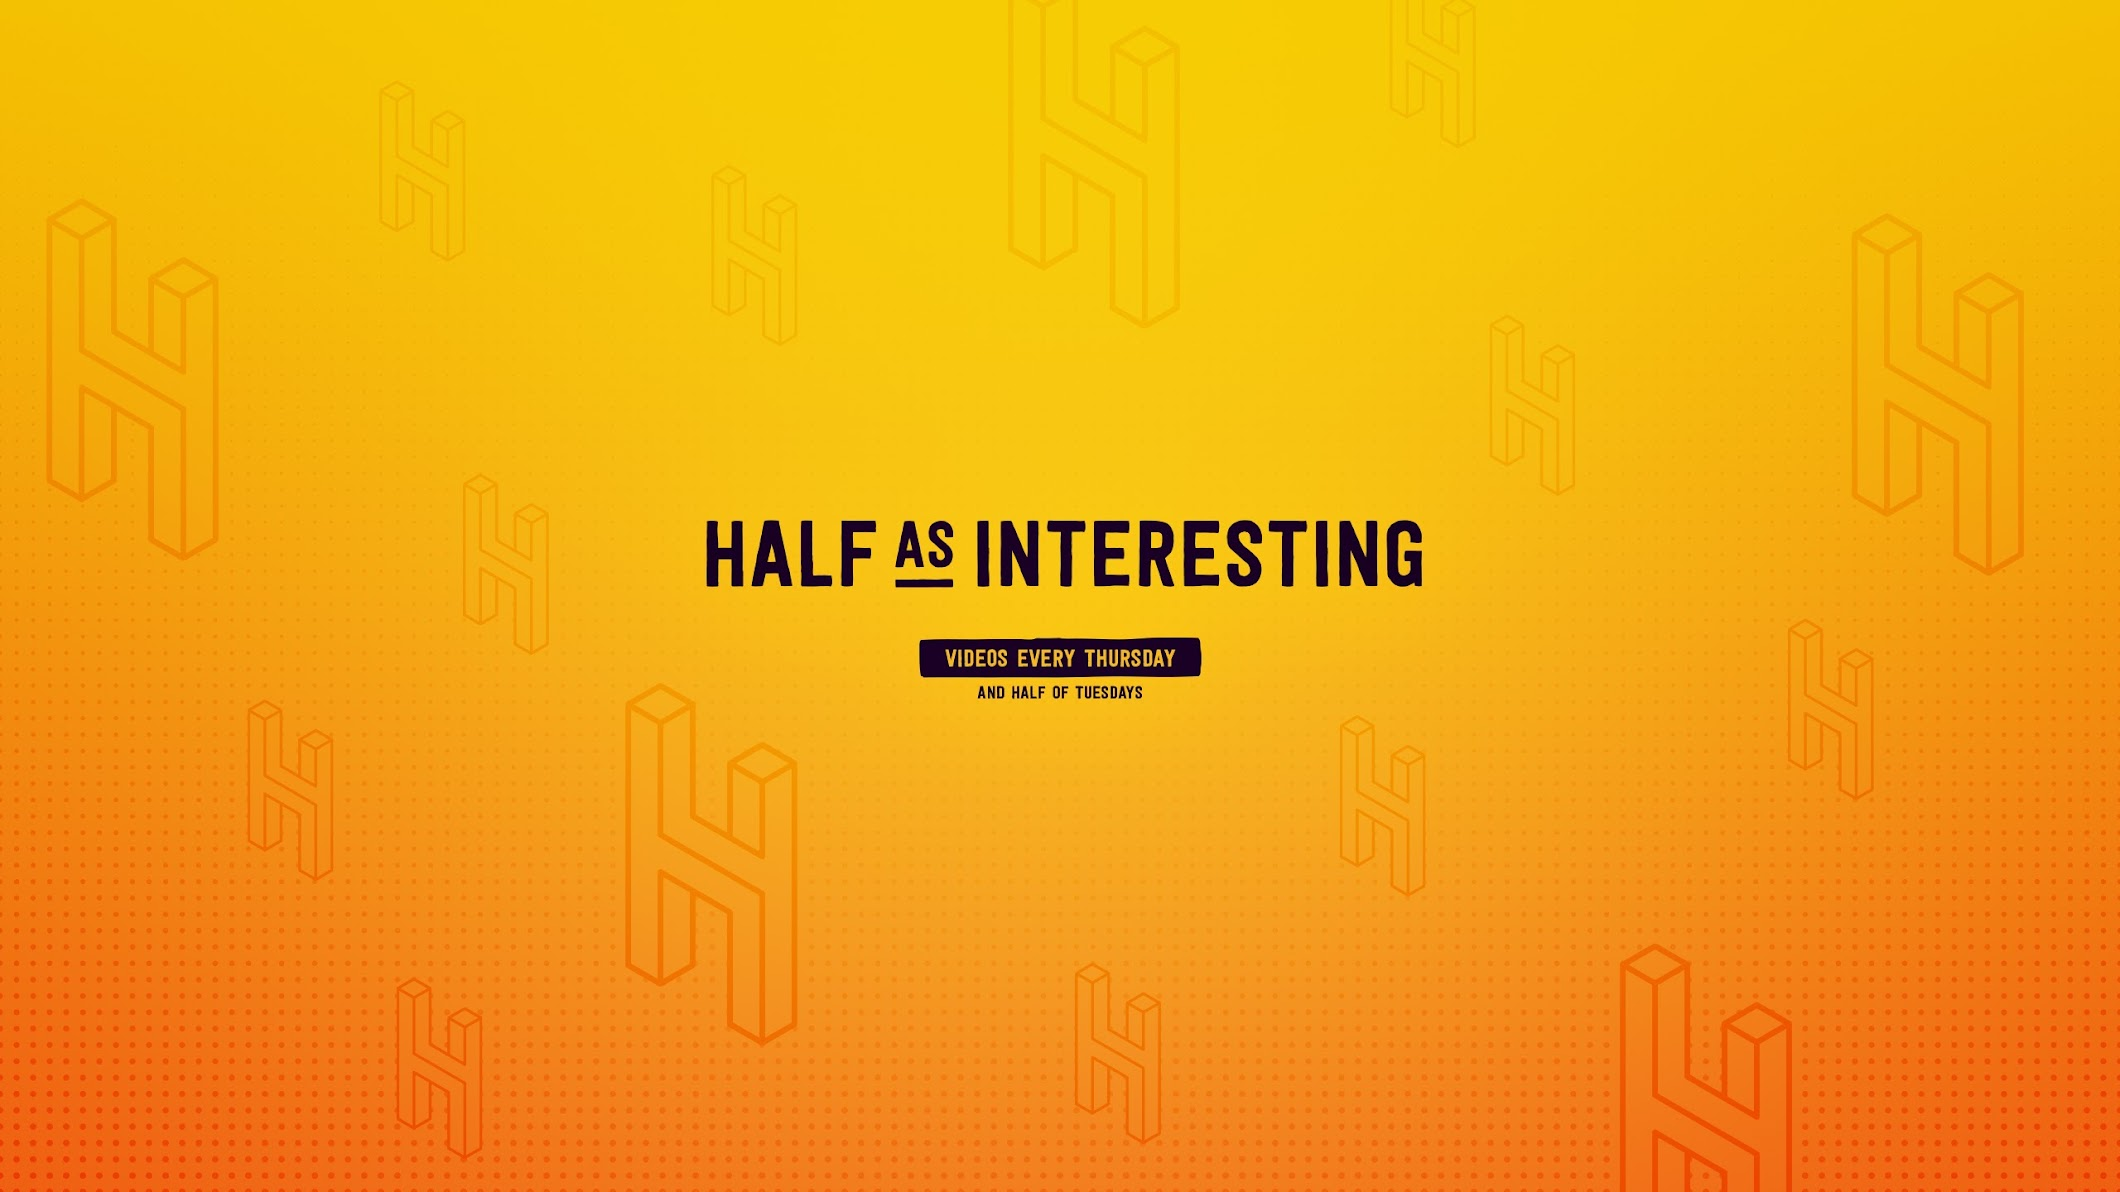 Half as Interesting